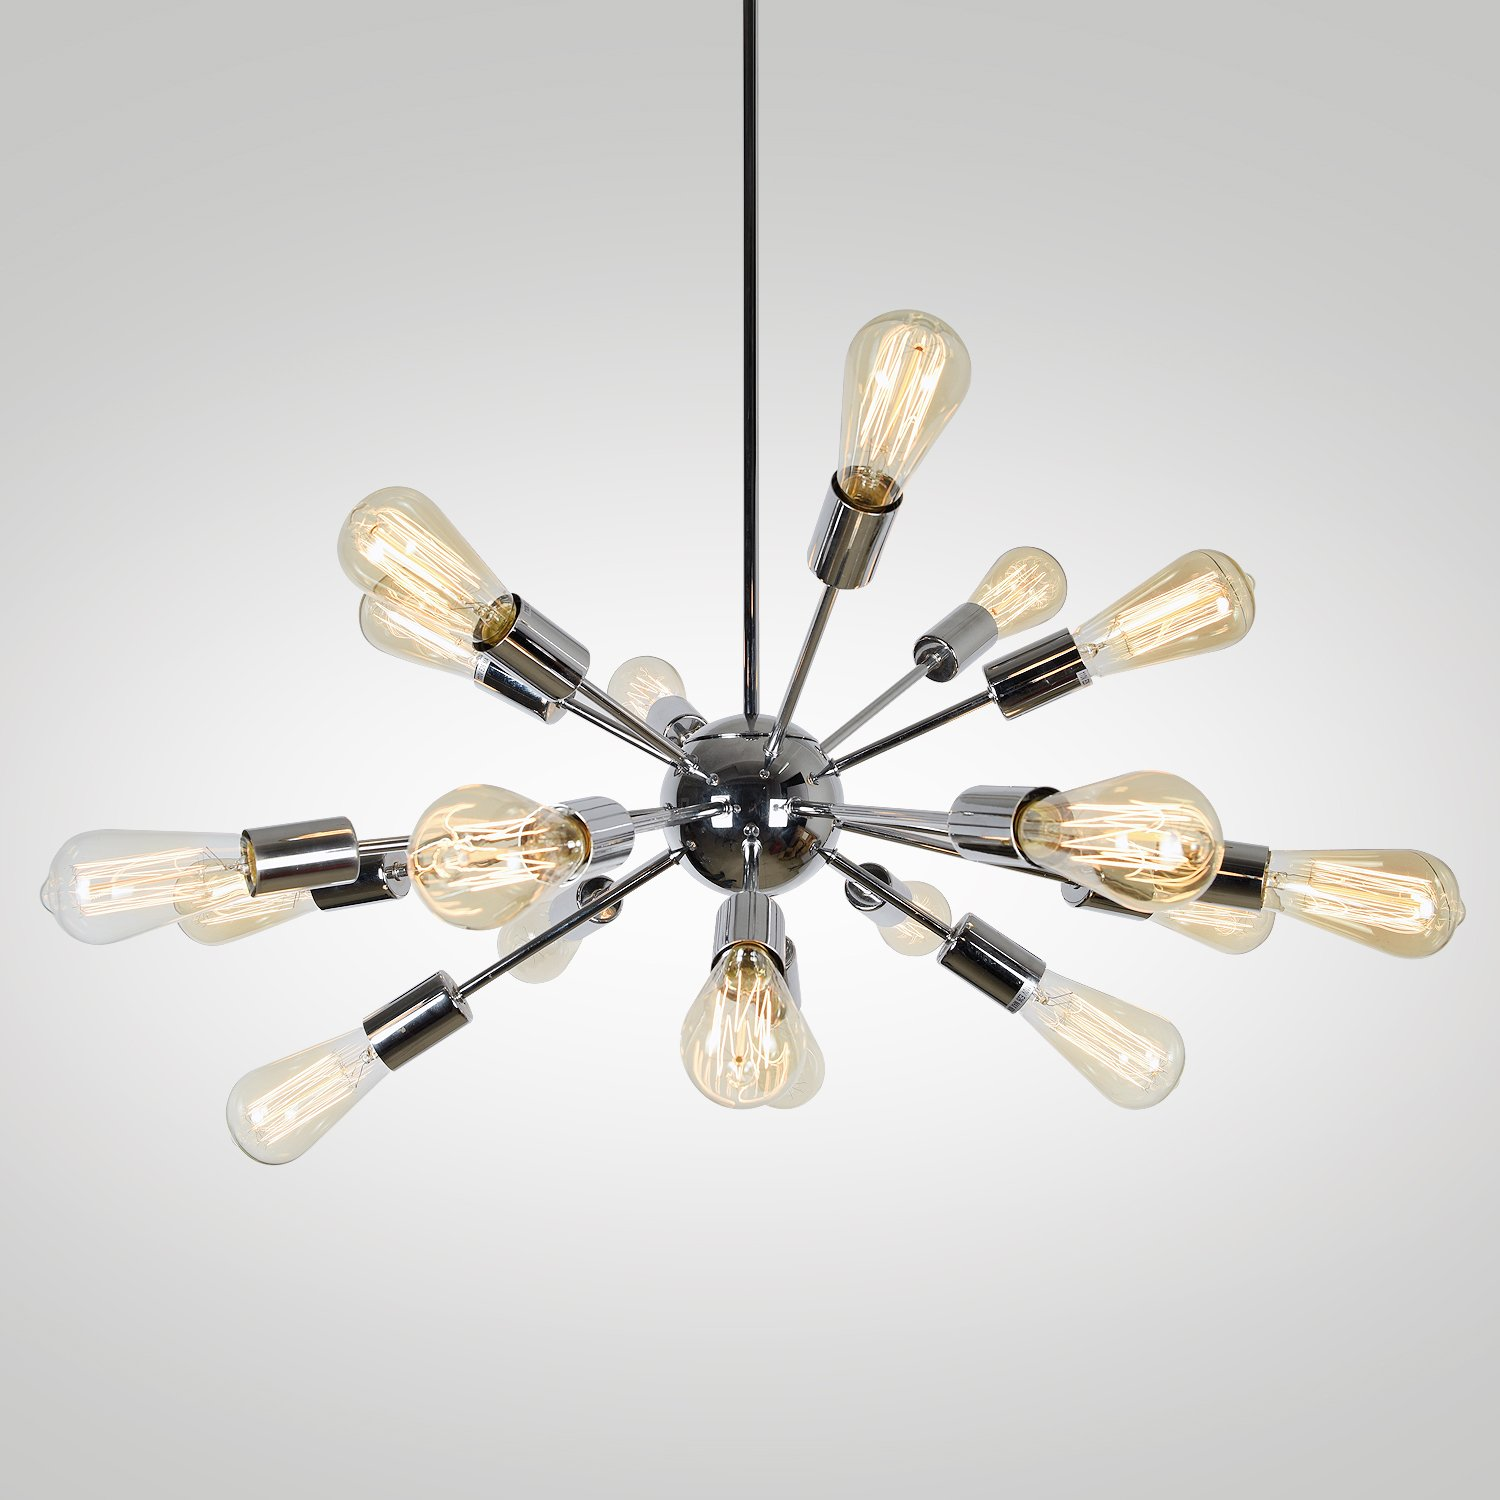 EdiMoM Brand; Satellite Metal 35.4-in 18-Light Brushed Nickle Tiered Chandelier